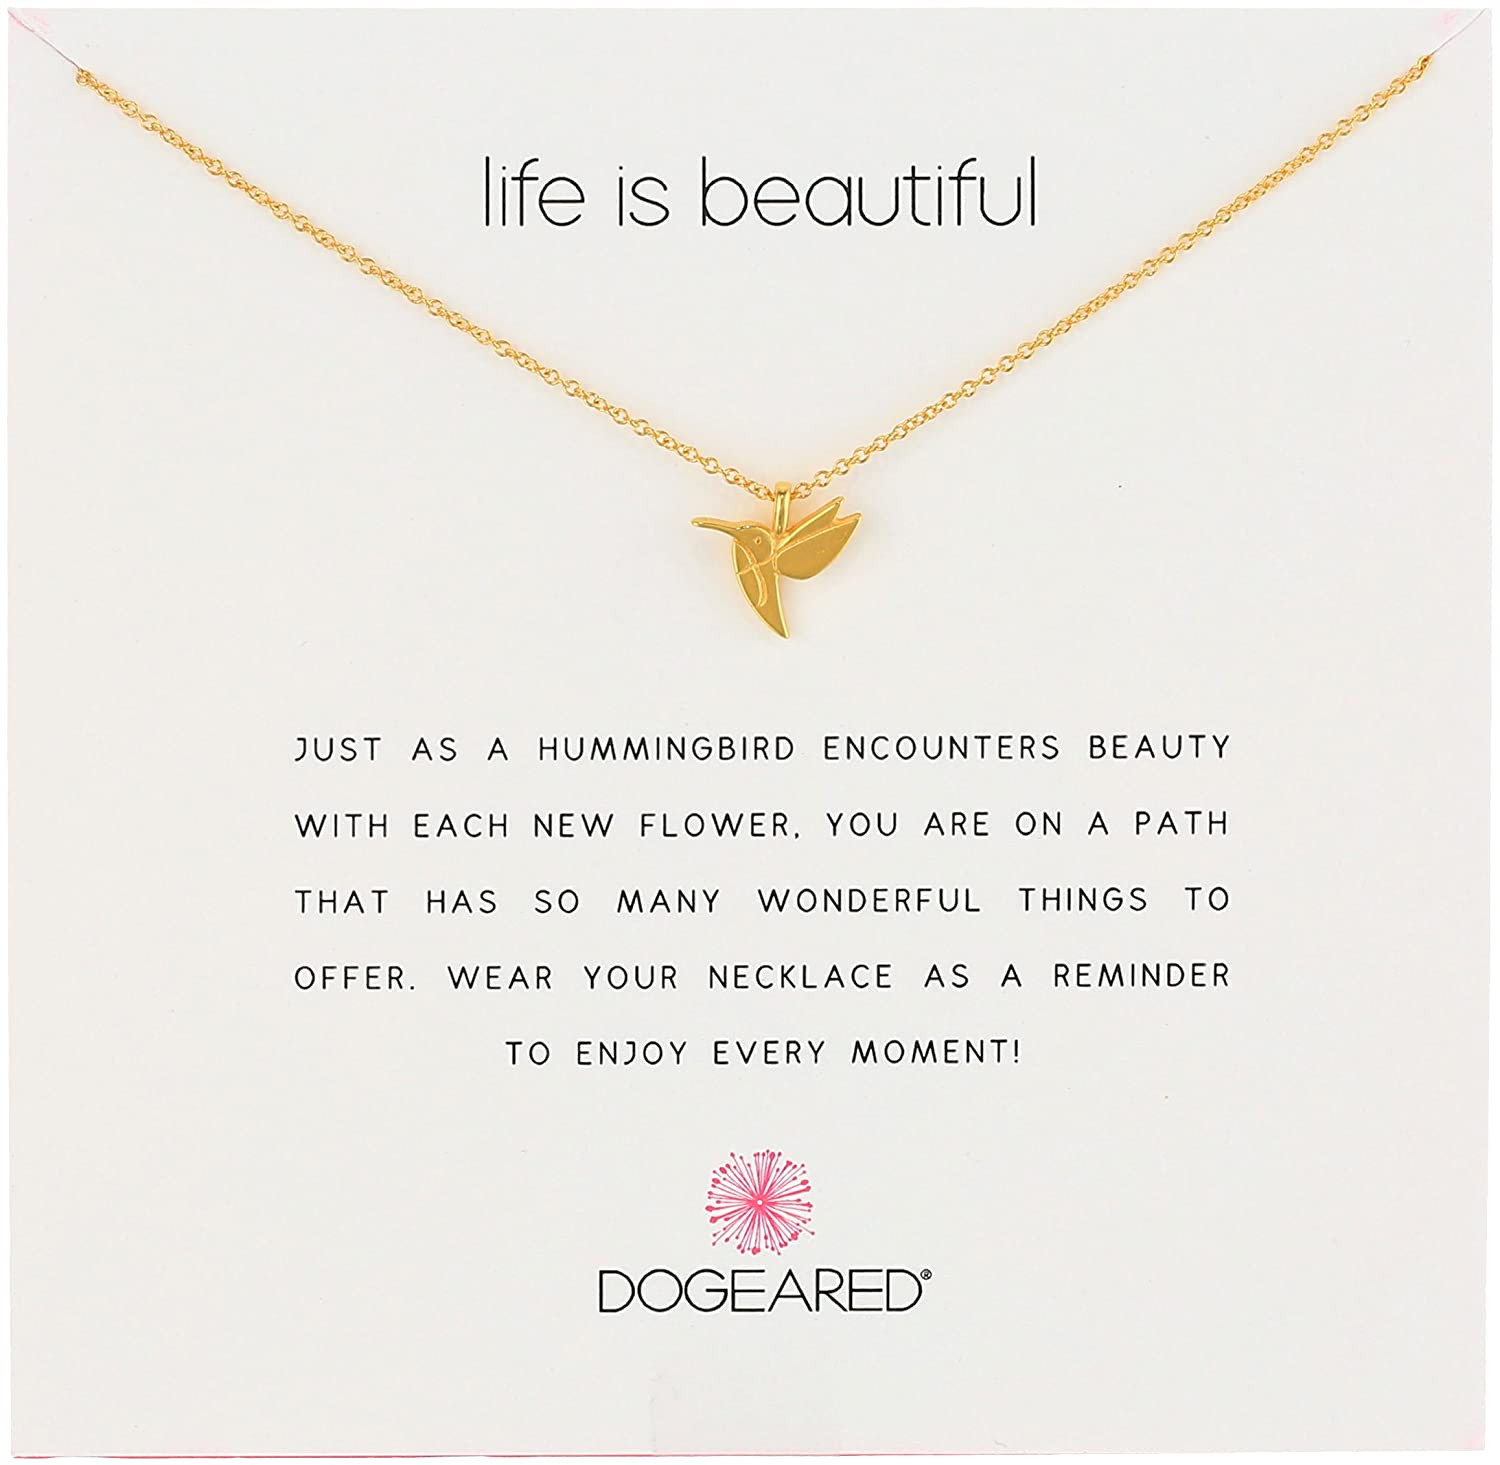 Dogeared Sterling Silver Life Is Beautiful Reminder Necklace, 18 18 Dog Eared (Jewelry) MS1465